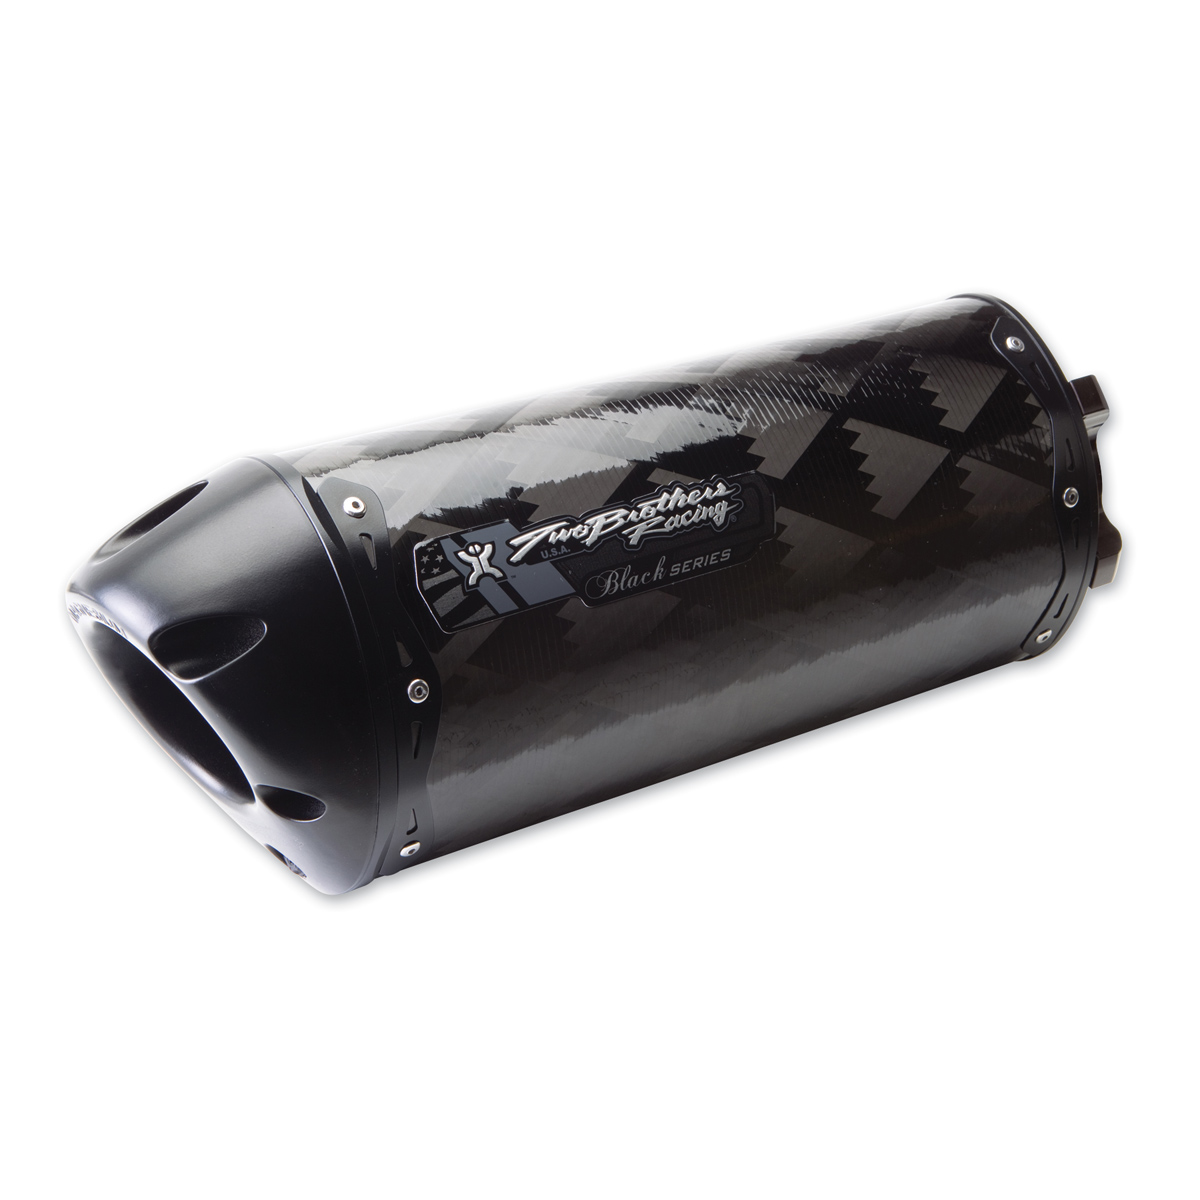 Two Brothers Racing Carbon Fiber M-2 Black Series Slip-On Exhaust